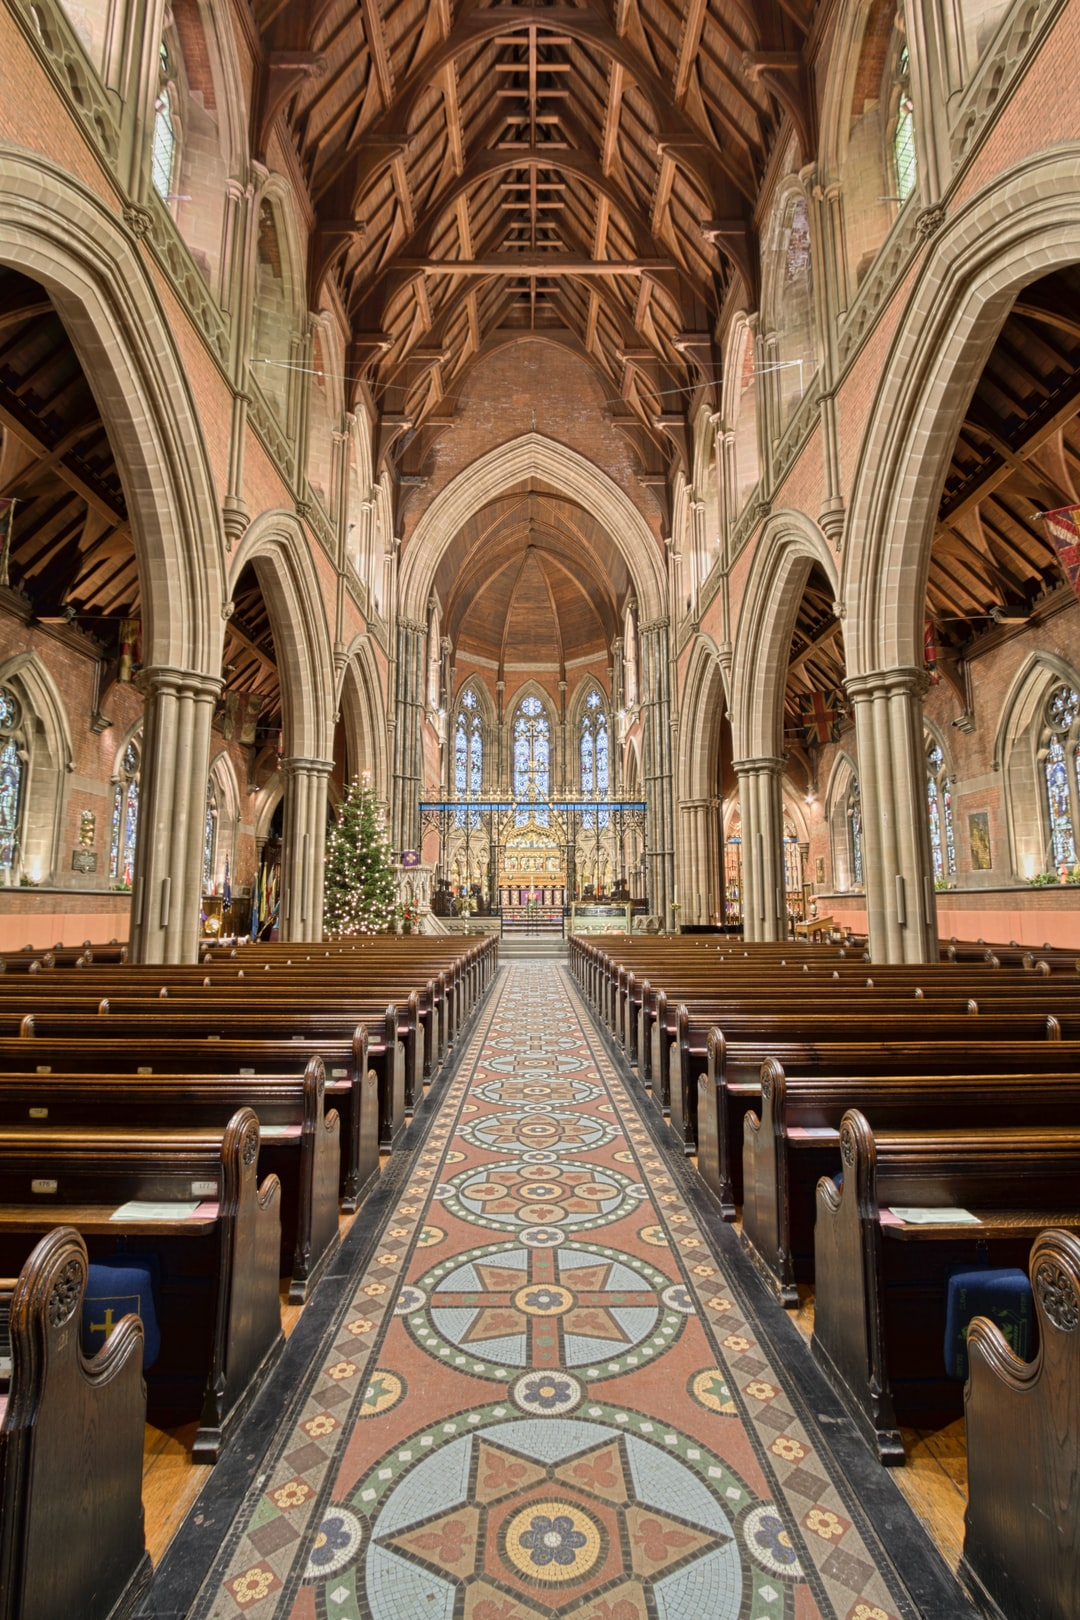 Here is a photograph taken from Bury Parish Church.  Located in Bury, Greater Manchester, England.  Website : www.michaeldbeckwith.com   Email : michael@michaeldbeckwith.com